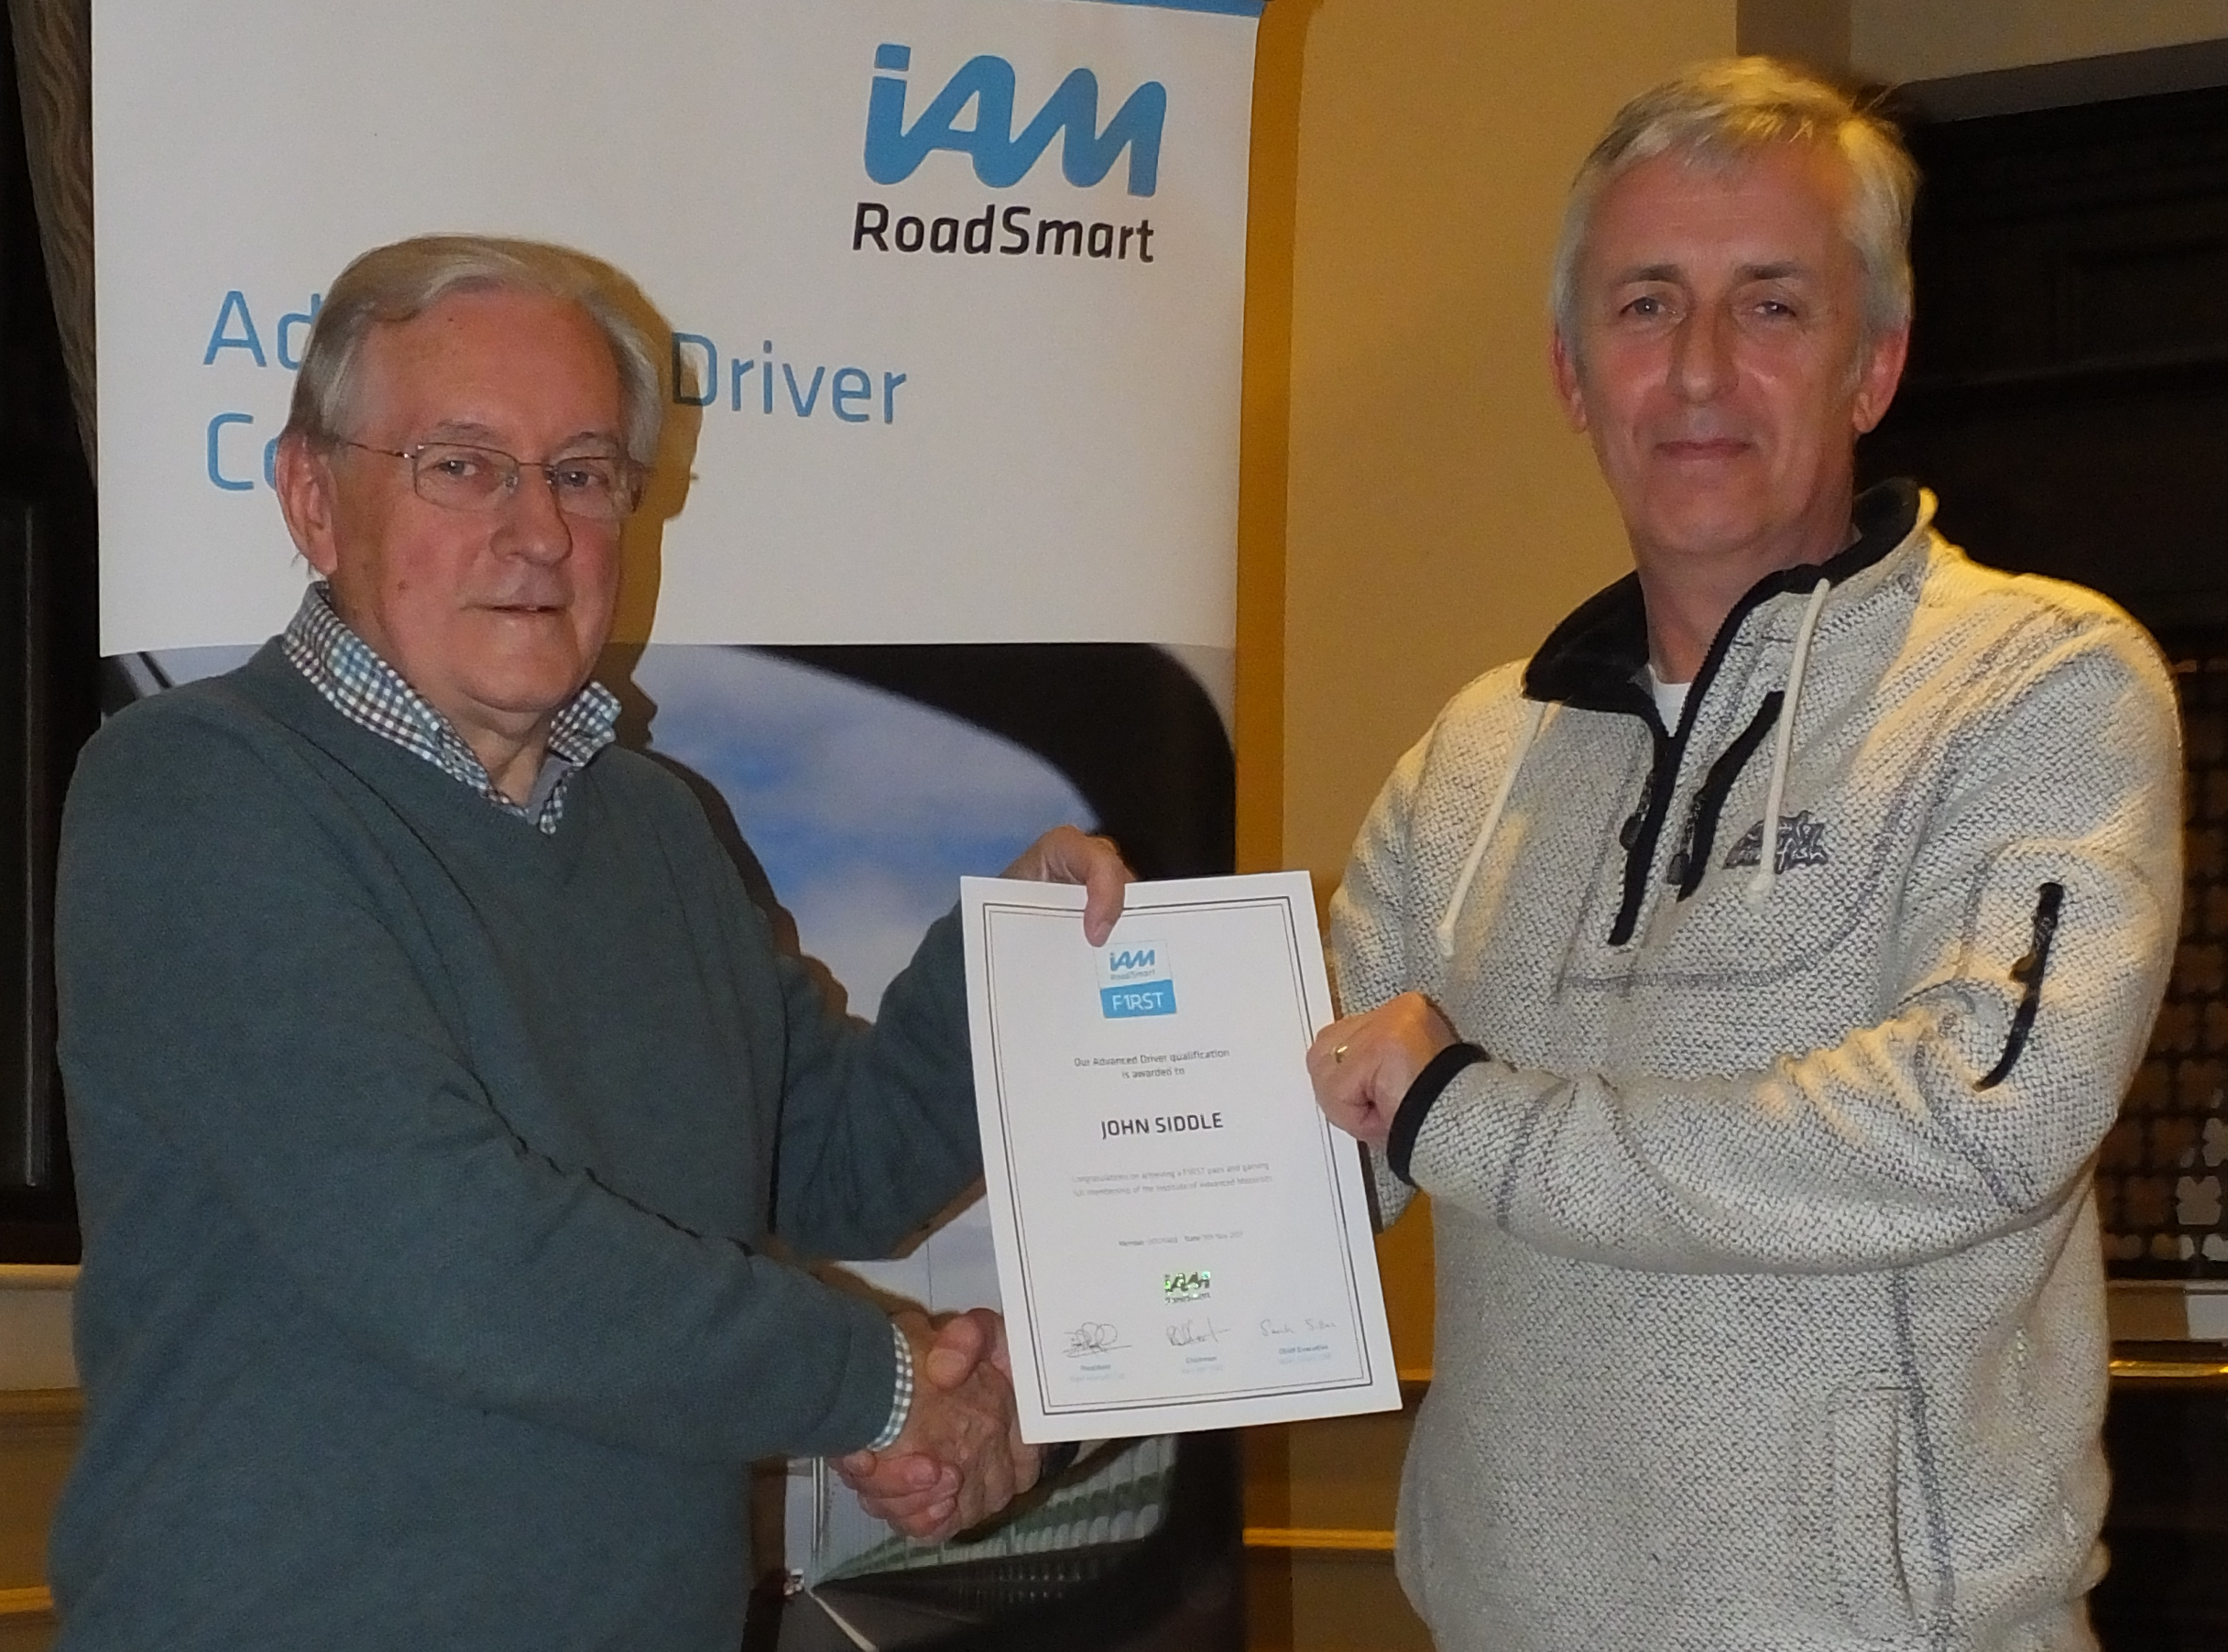 Roger Hicks presents John Siddle with his certificate